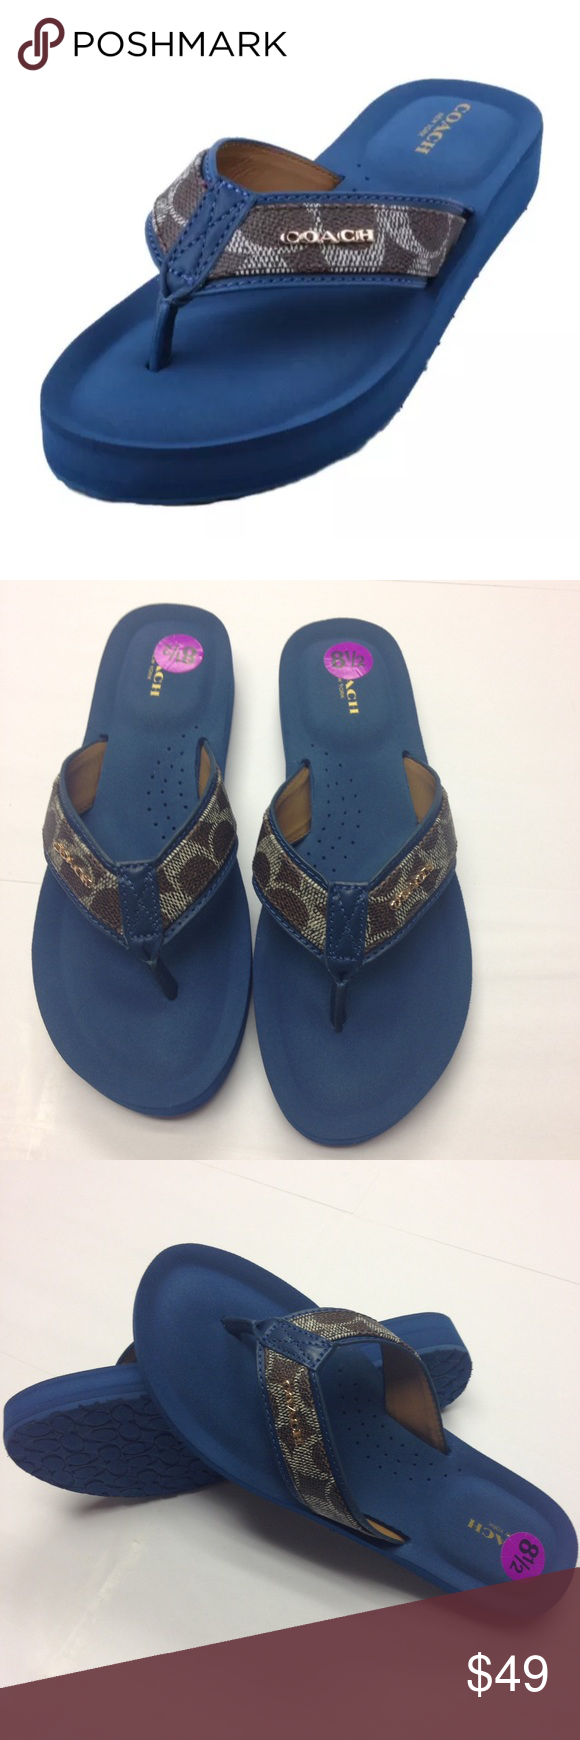 efd6d3f1a8ab Authentic Coach Judy Flip Flops Sandals 100% Authentic New Without Box Coach  Judy Brown